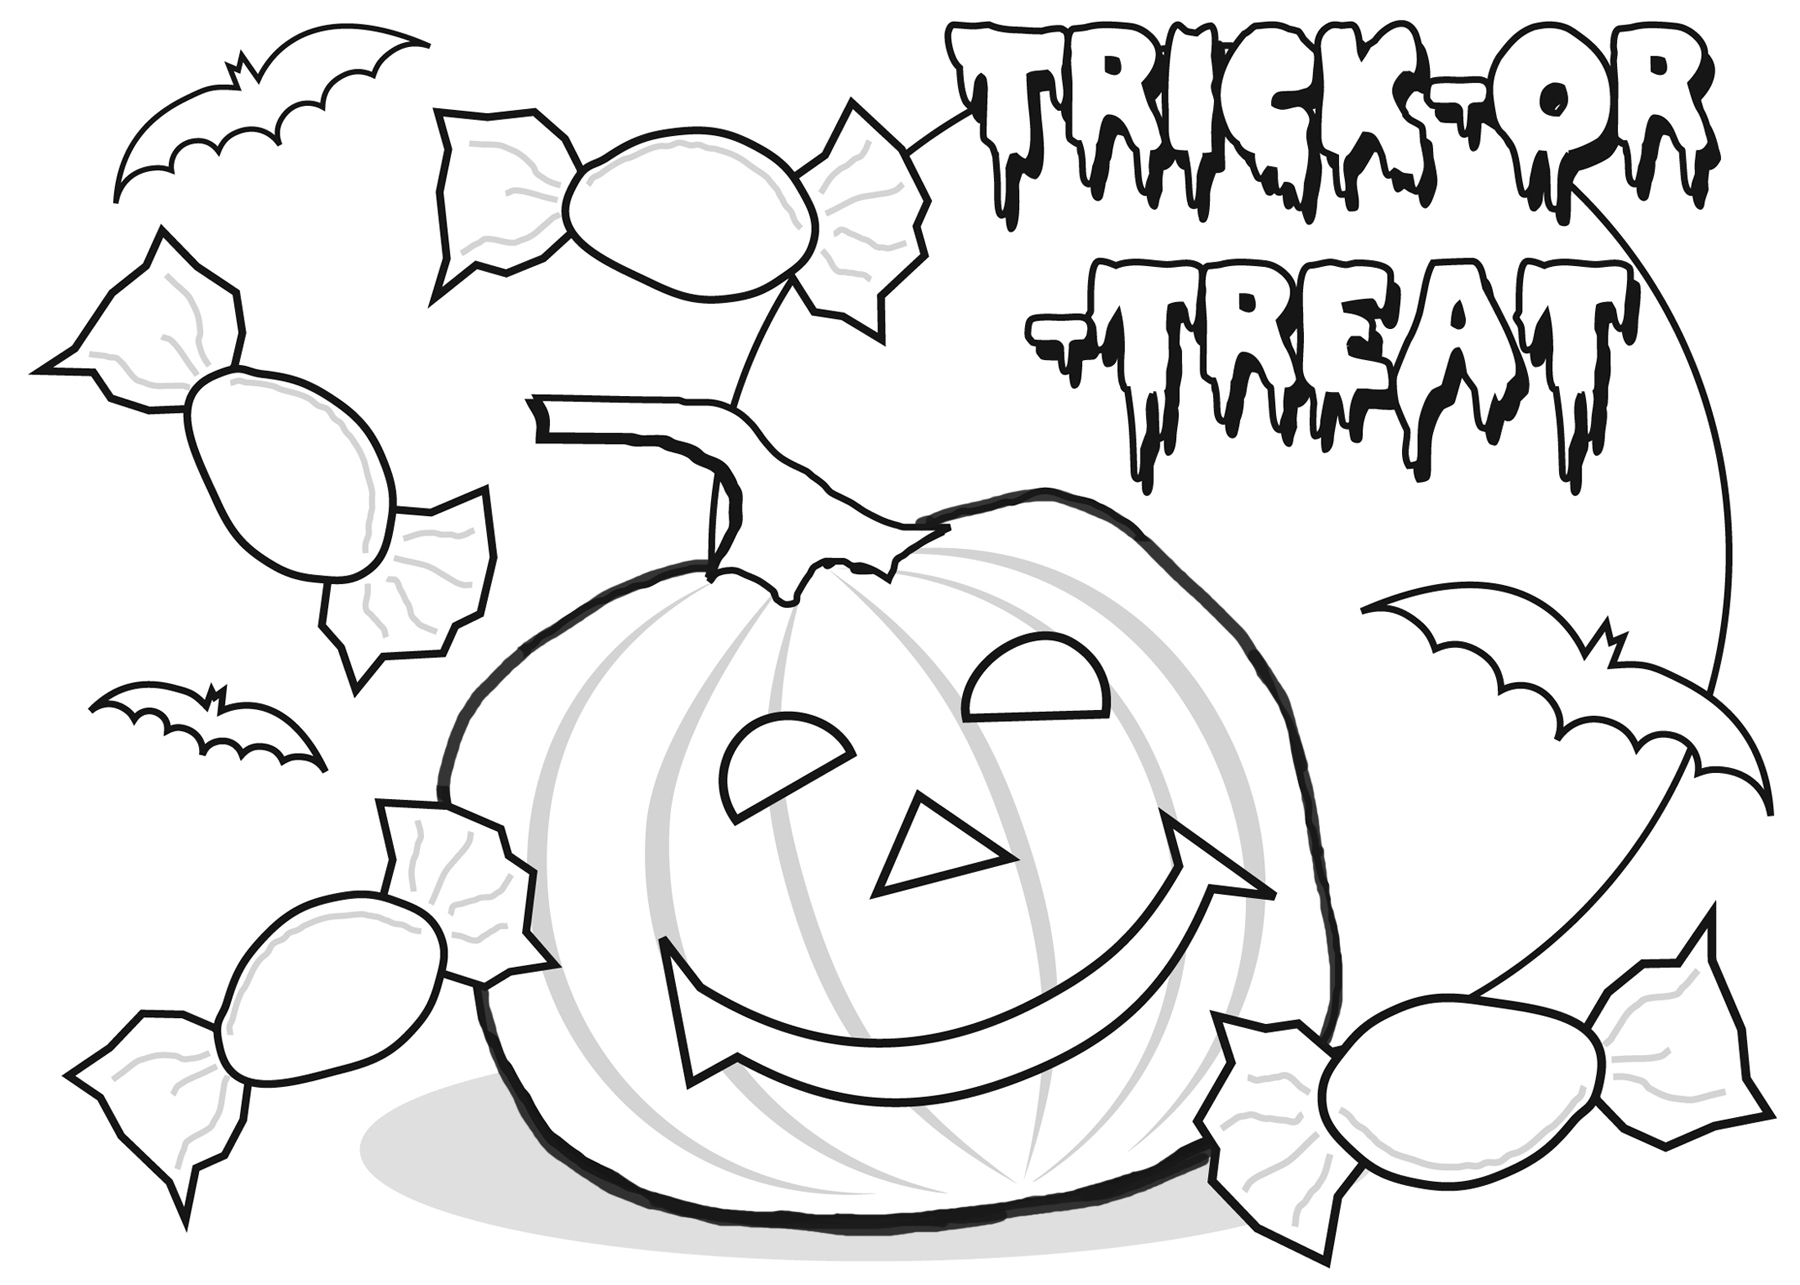 coloring halloween drawings halloween coloring pages to download and print for free halloween drawings coloring